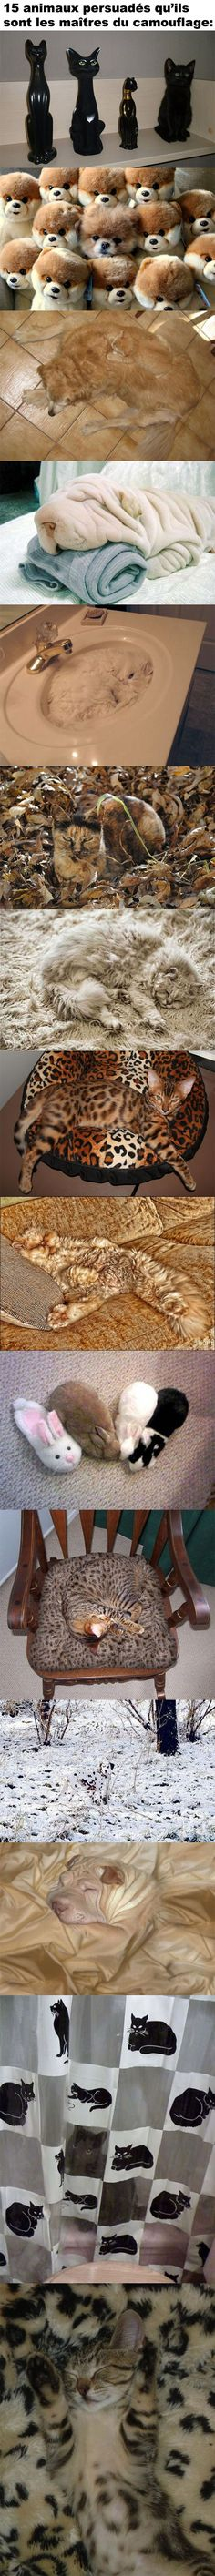 15 Cute animals that can camouflage like that Cute Funny Animals, Funny Cute, Cute Cats, Funny Dogs, Funny Memes, Crazy Cat Lady, Crazy Cats, Animals And Pets, Baby Animals